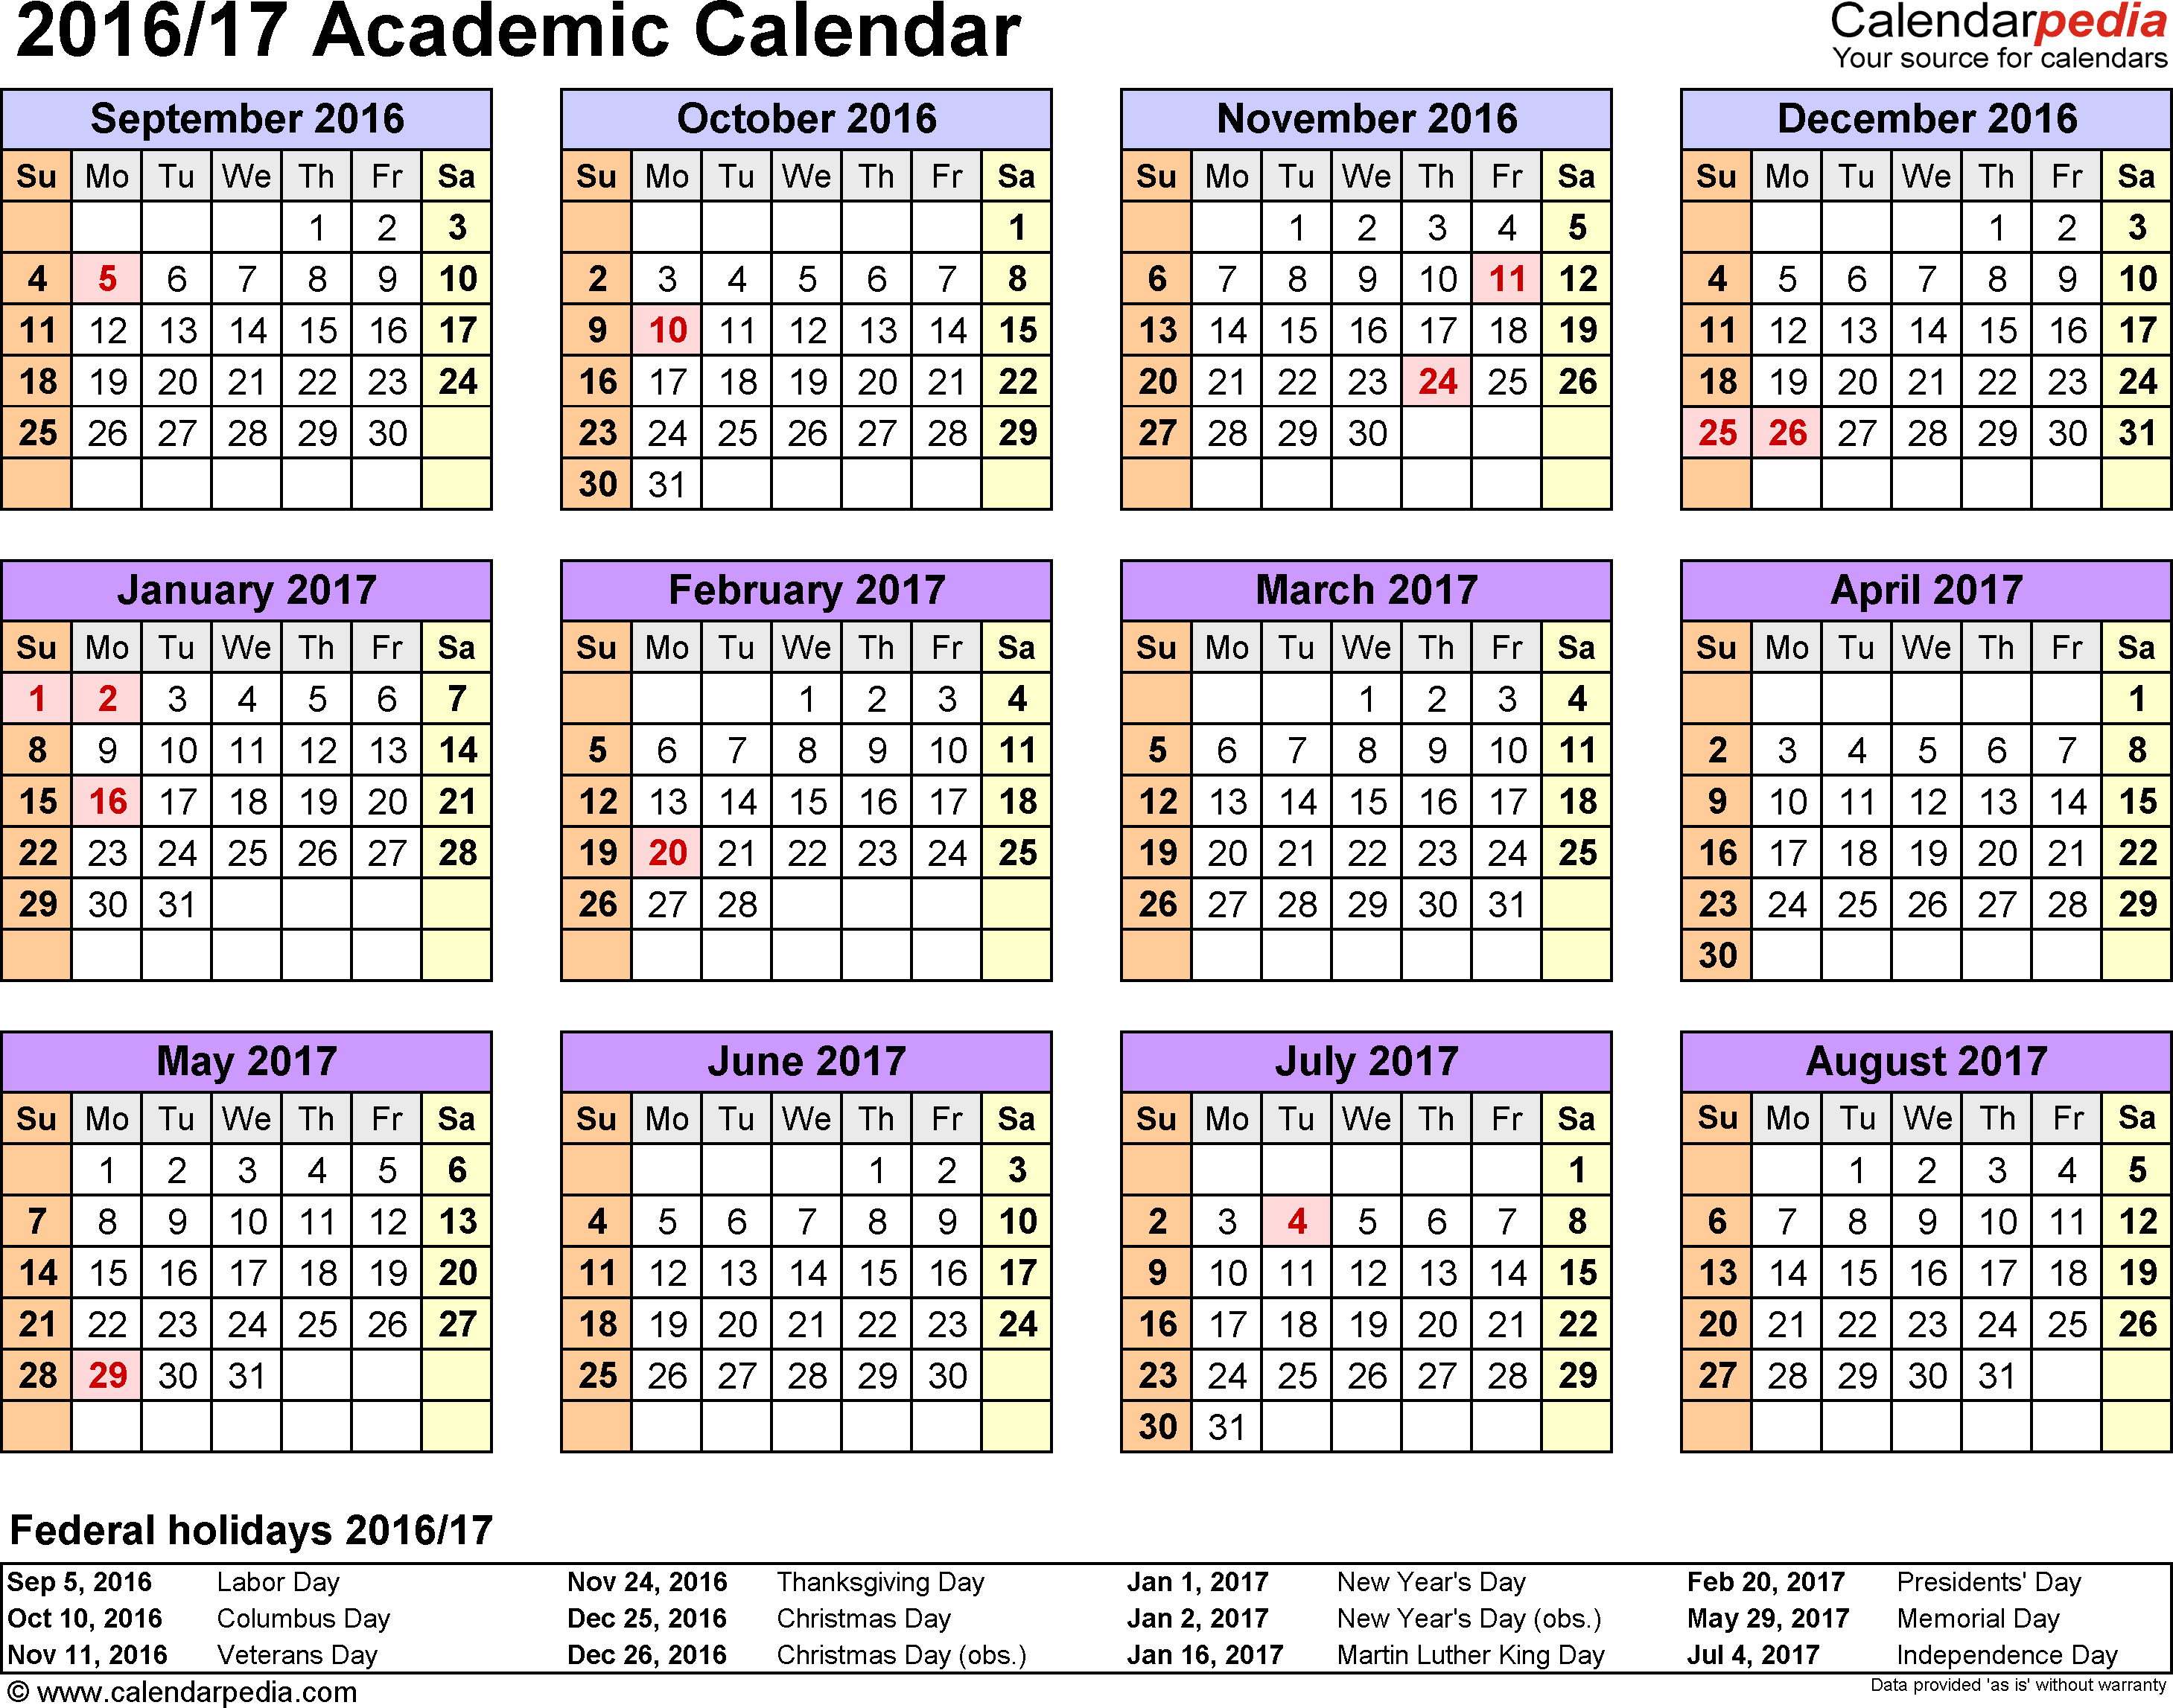 Template 4: Academic calendar 2016/17 for Excel, landscape orientation, year at a glance, 1 page